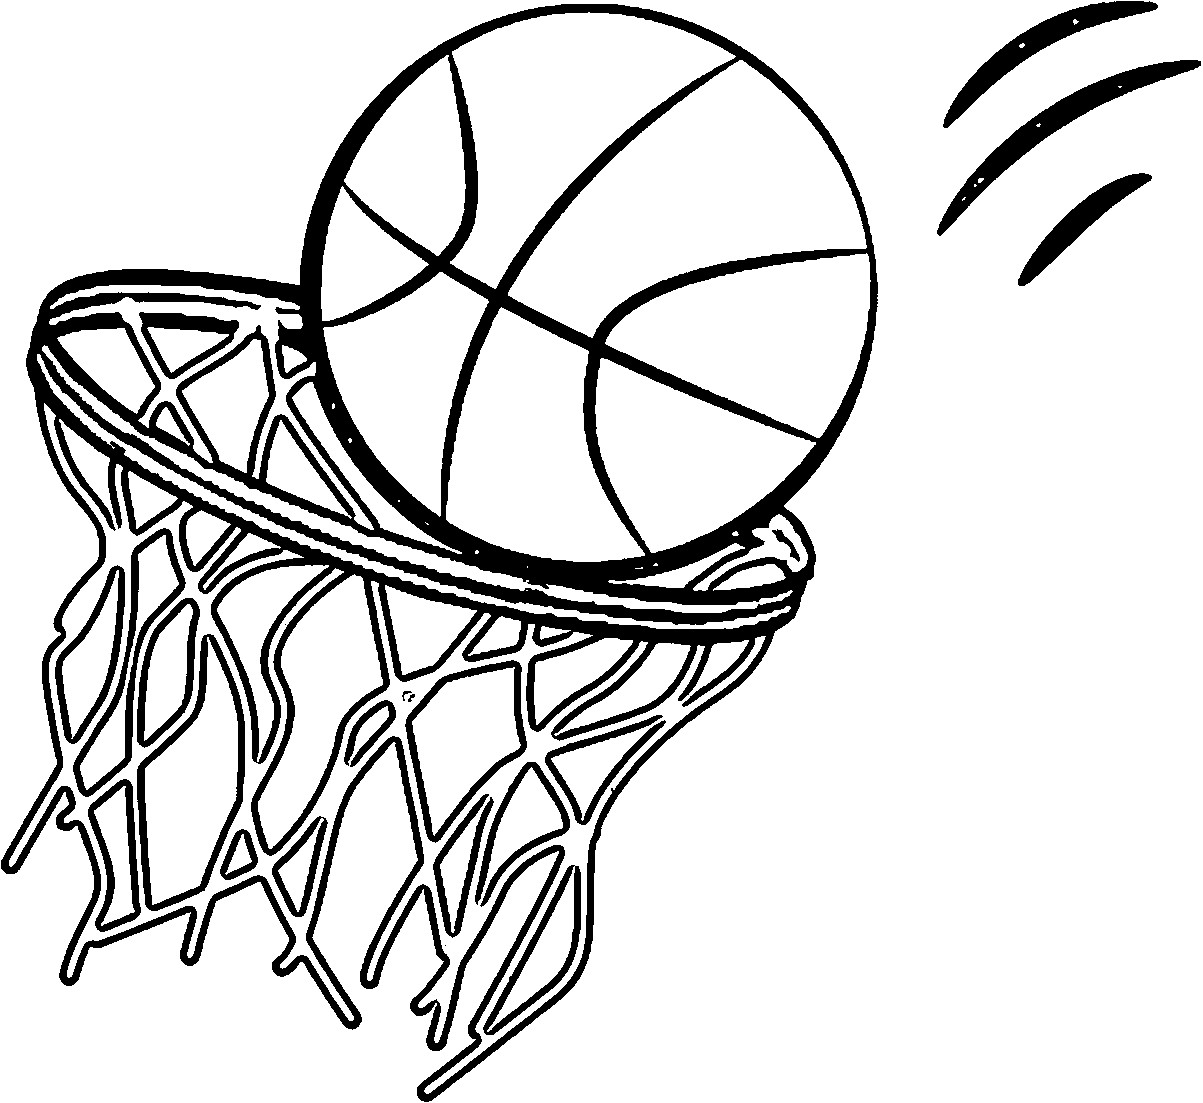 drawing of a basketball basketball goal drawing free download on clipartmag of drawing a basketball